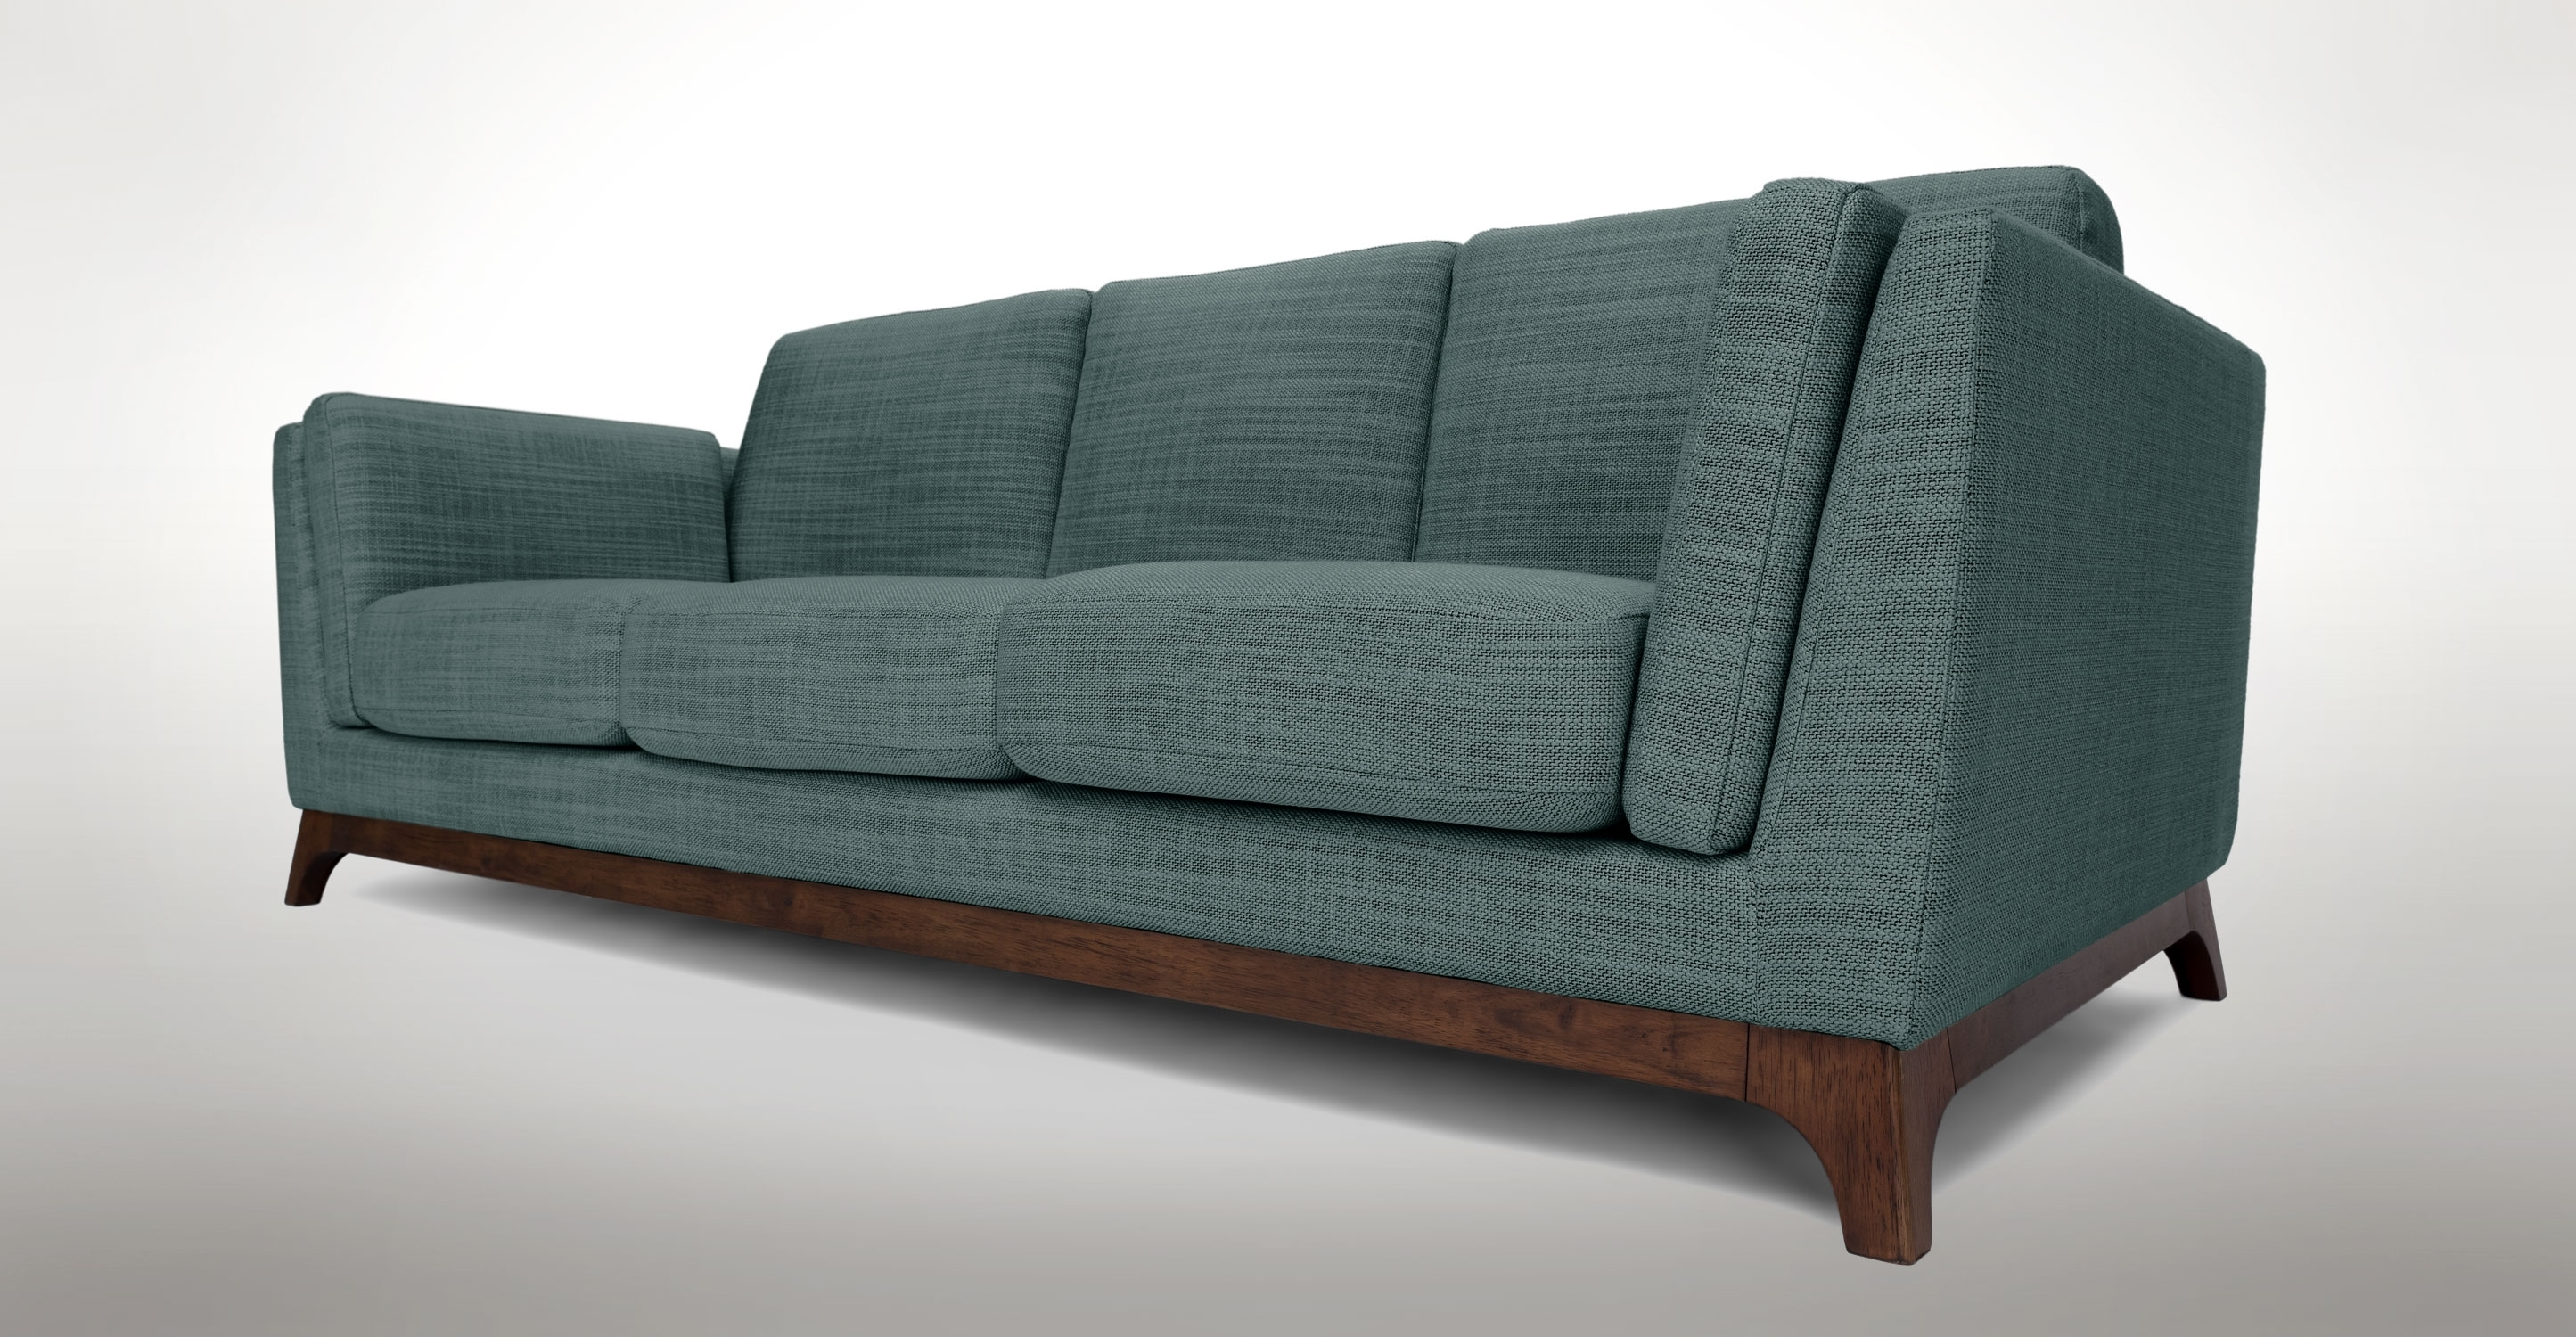 Blue Sofa 3 Seater With Solid Wood Legs | Article Ceni Modern With Aqua Sofas (View 7 of 10)